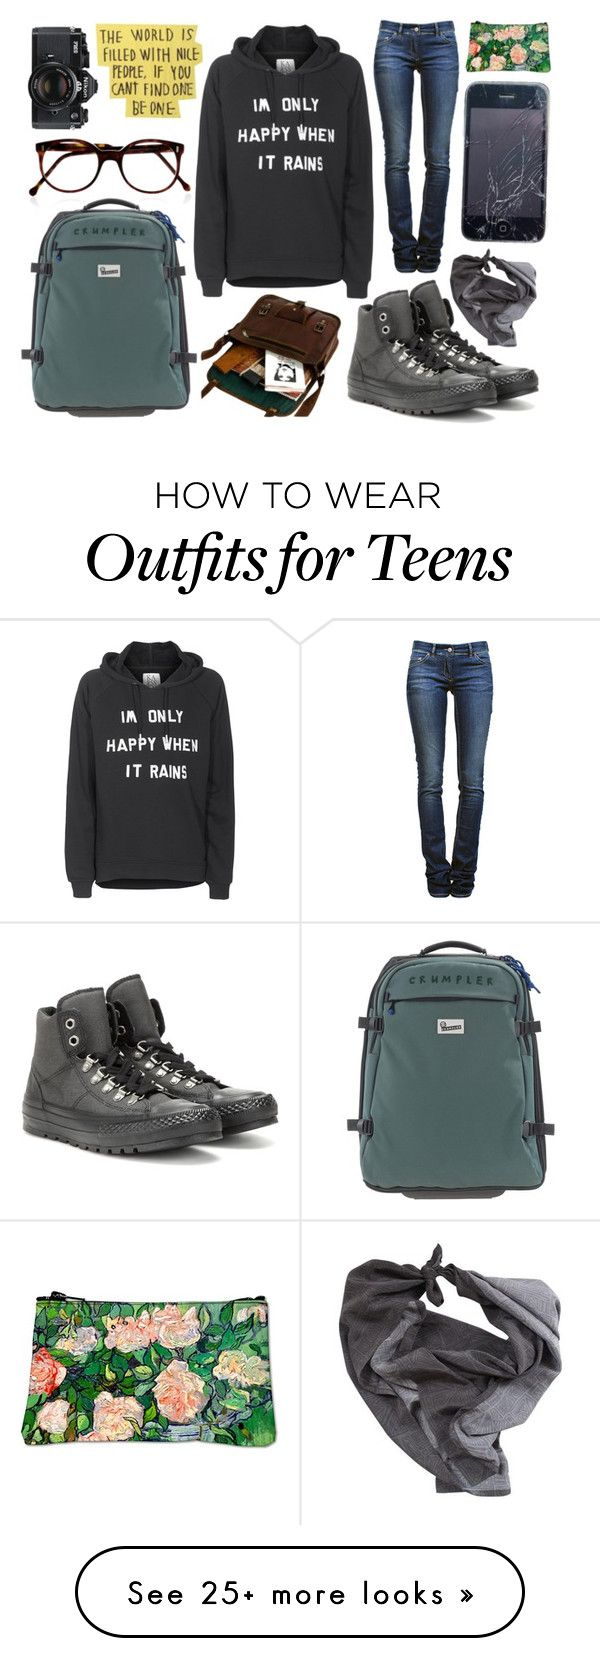 """i have that wanderlust feel again"" by princessgeek86 on Polyvore featuring mode, Zoe Karssen, Converse, Étoile Isabel Marant, Cutler and Gross, Nikon, women's clothing, women's fashion, women en female"